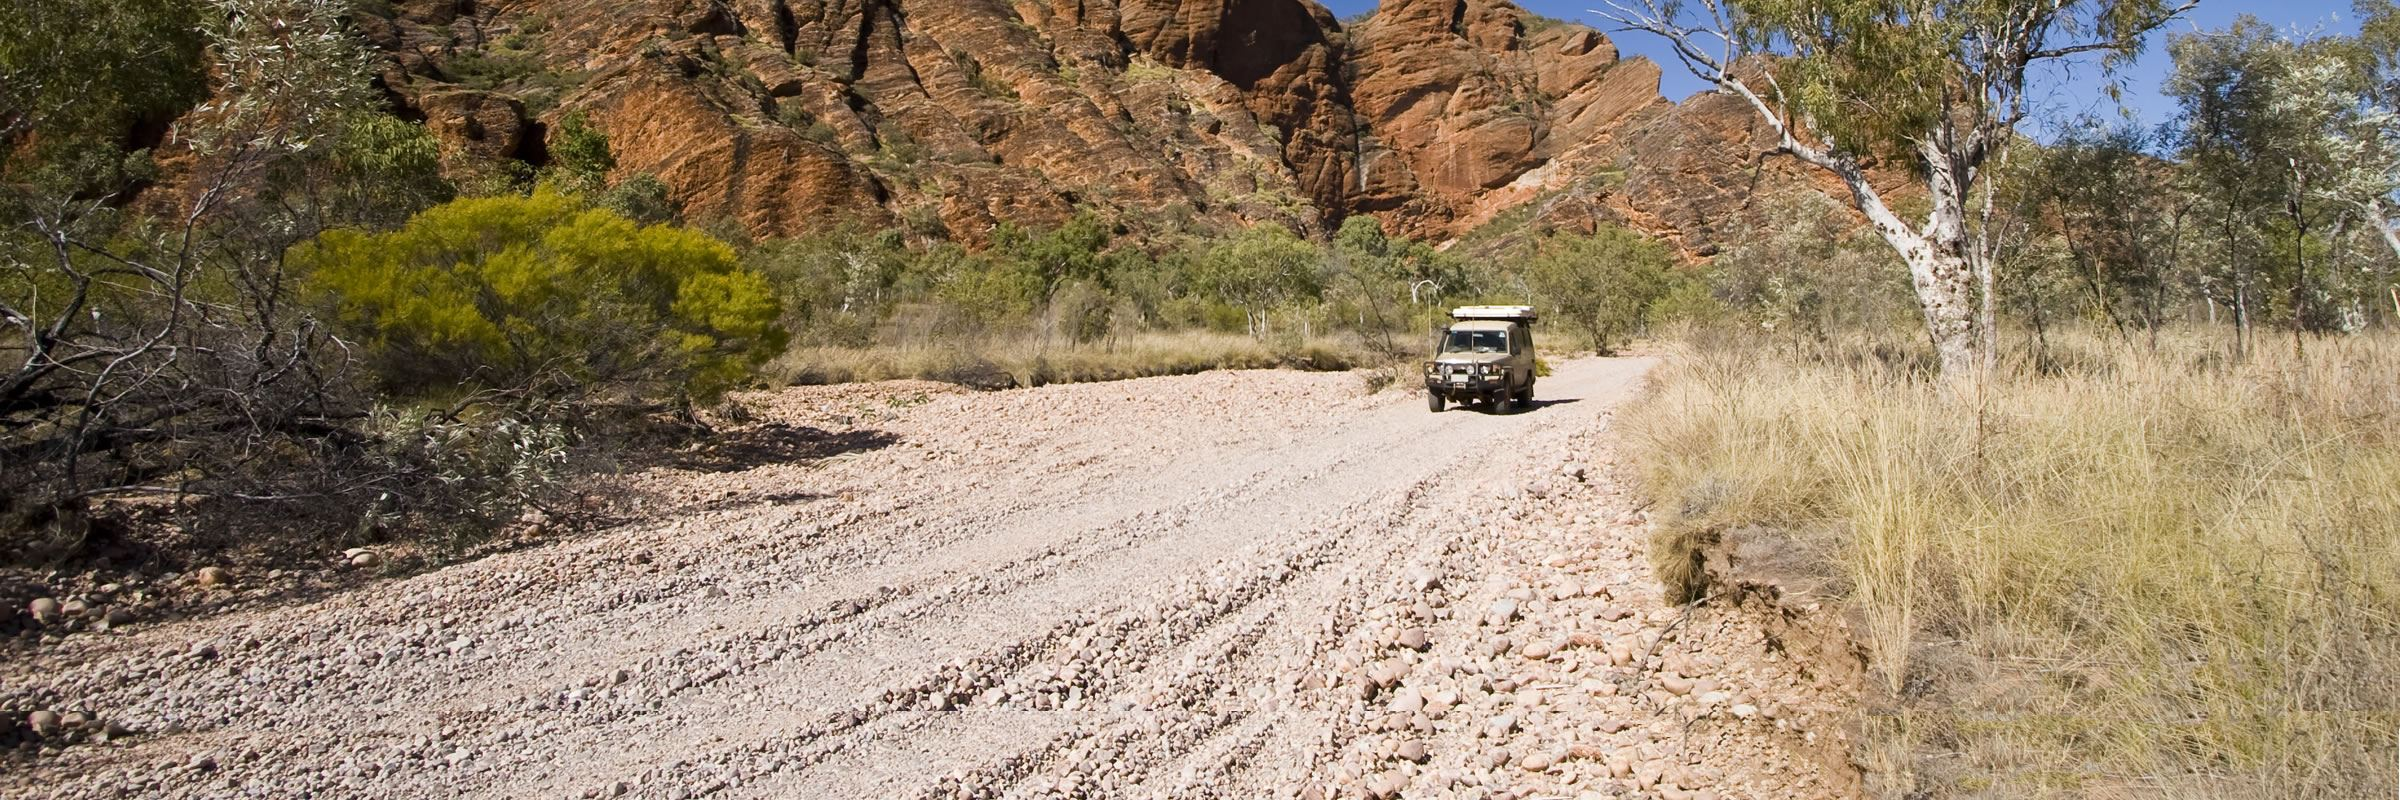 4x4 tip in the Bungle Bungles, Australia